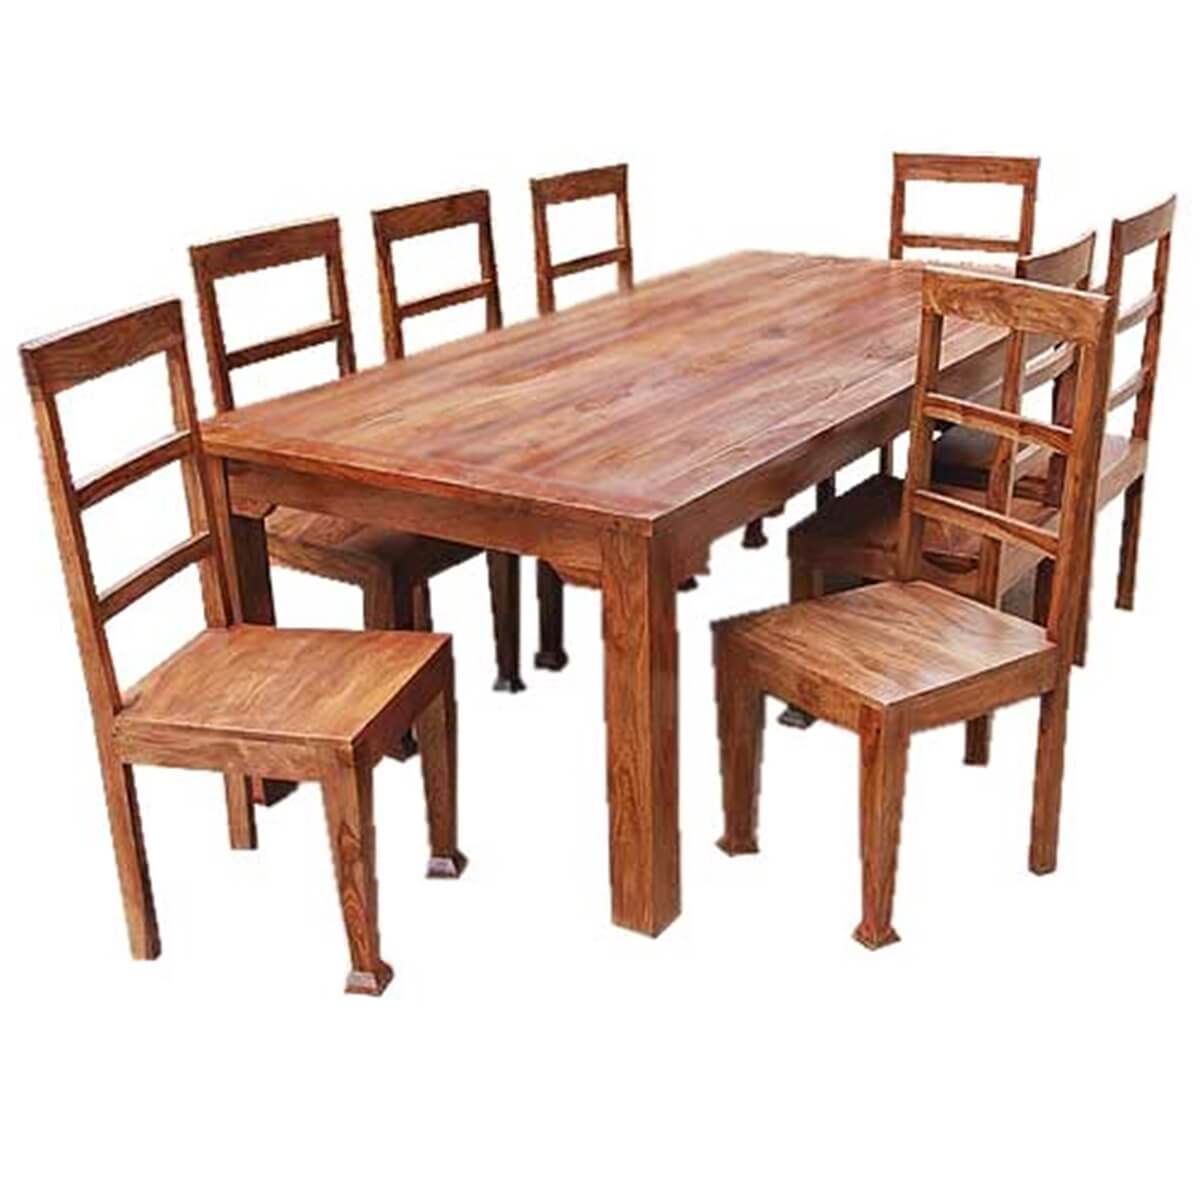 Solid Wood Kitchen Tables: Rustic Furniture Solid Wood Dining Table & Chair Set